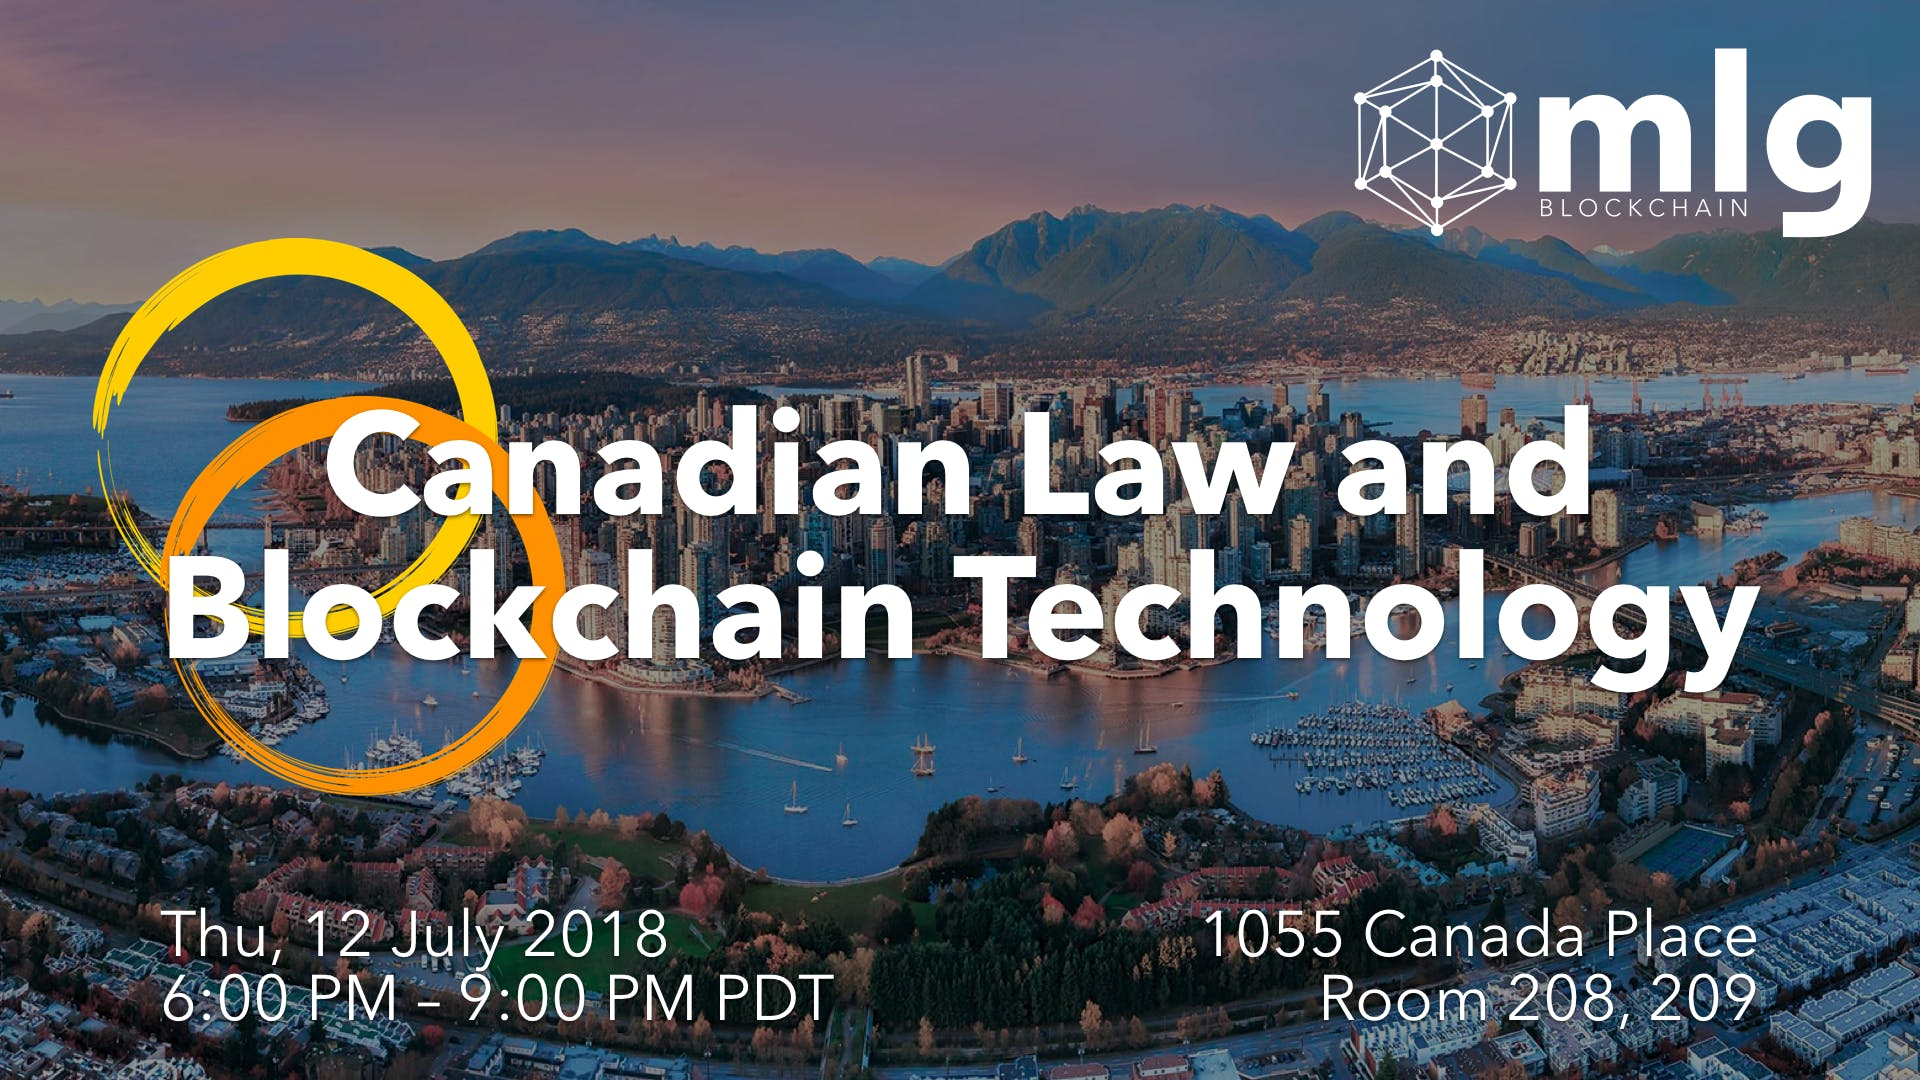 Panel Discussion on the Legal Landscape of Blockchain Technology in Canada